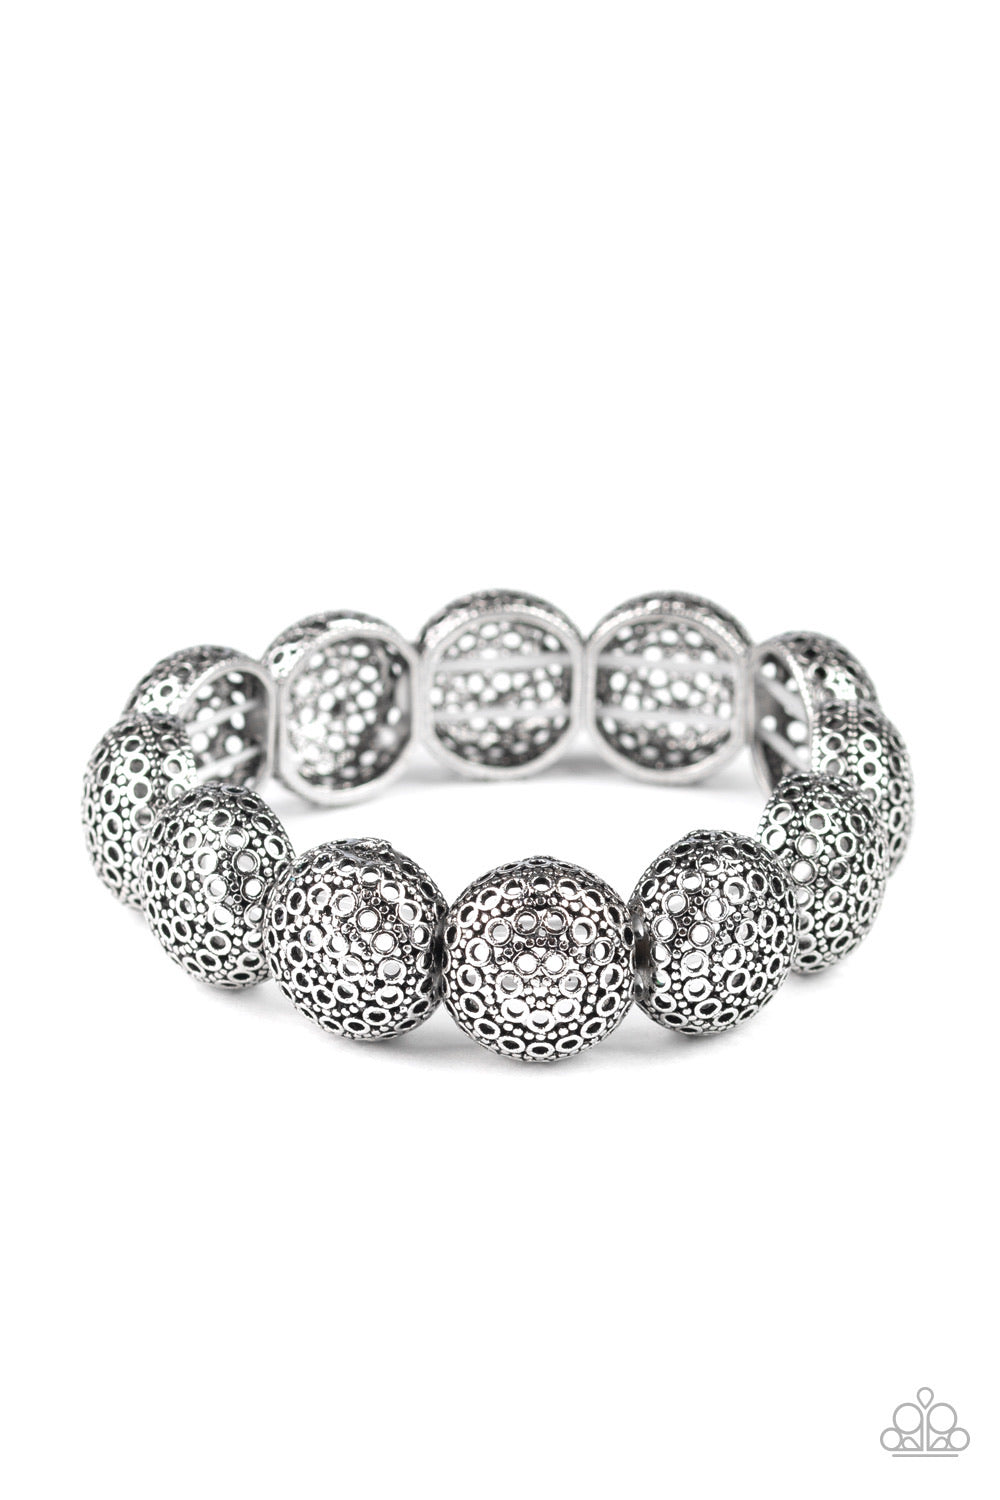 Obviously Ornate - Silver Bracelet - Paparazzi Accessories